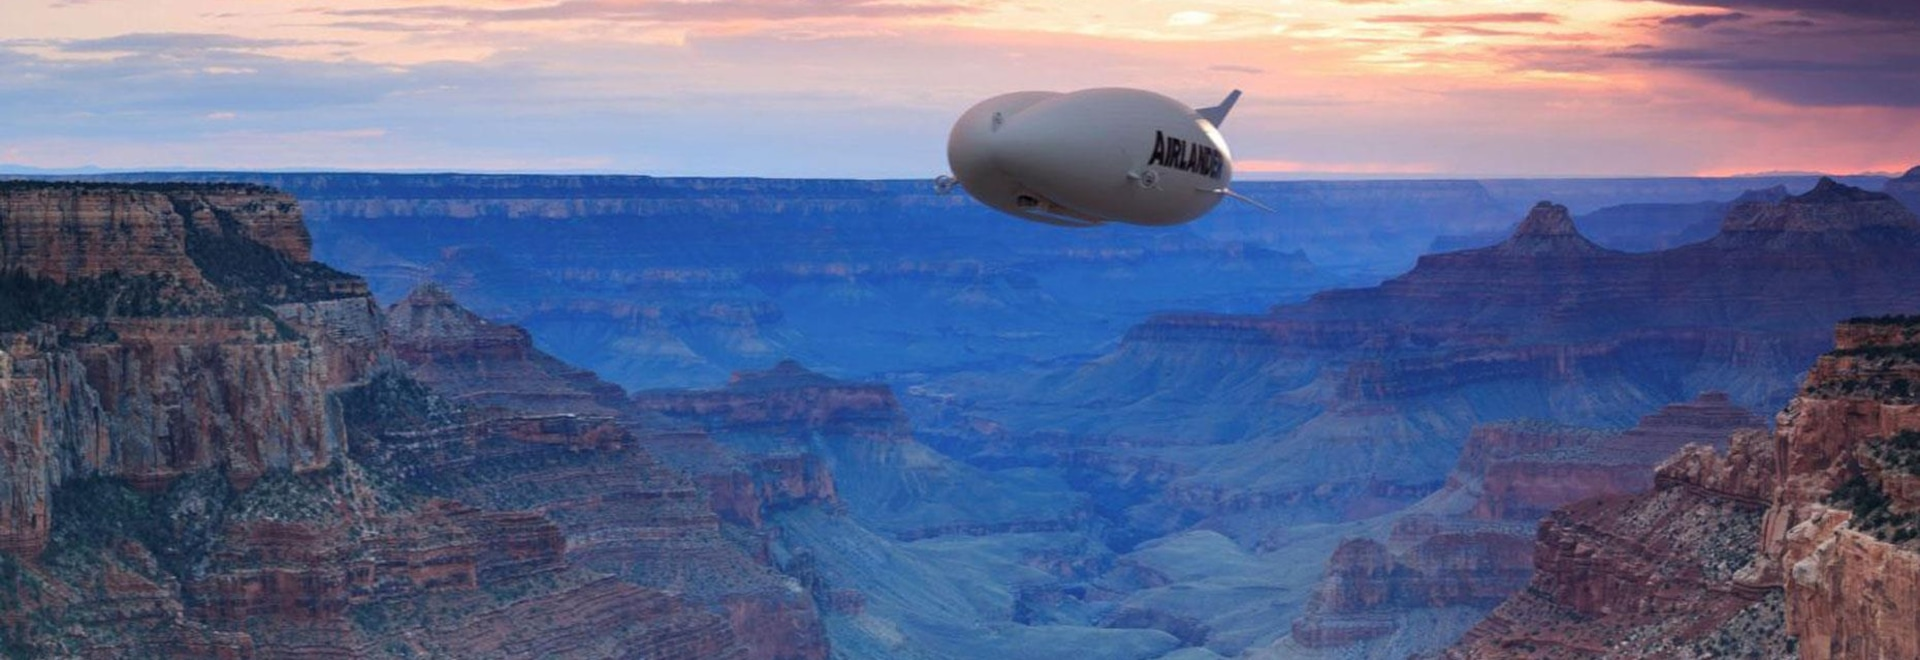 Courtesy of Airlander